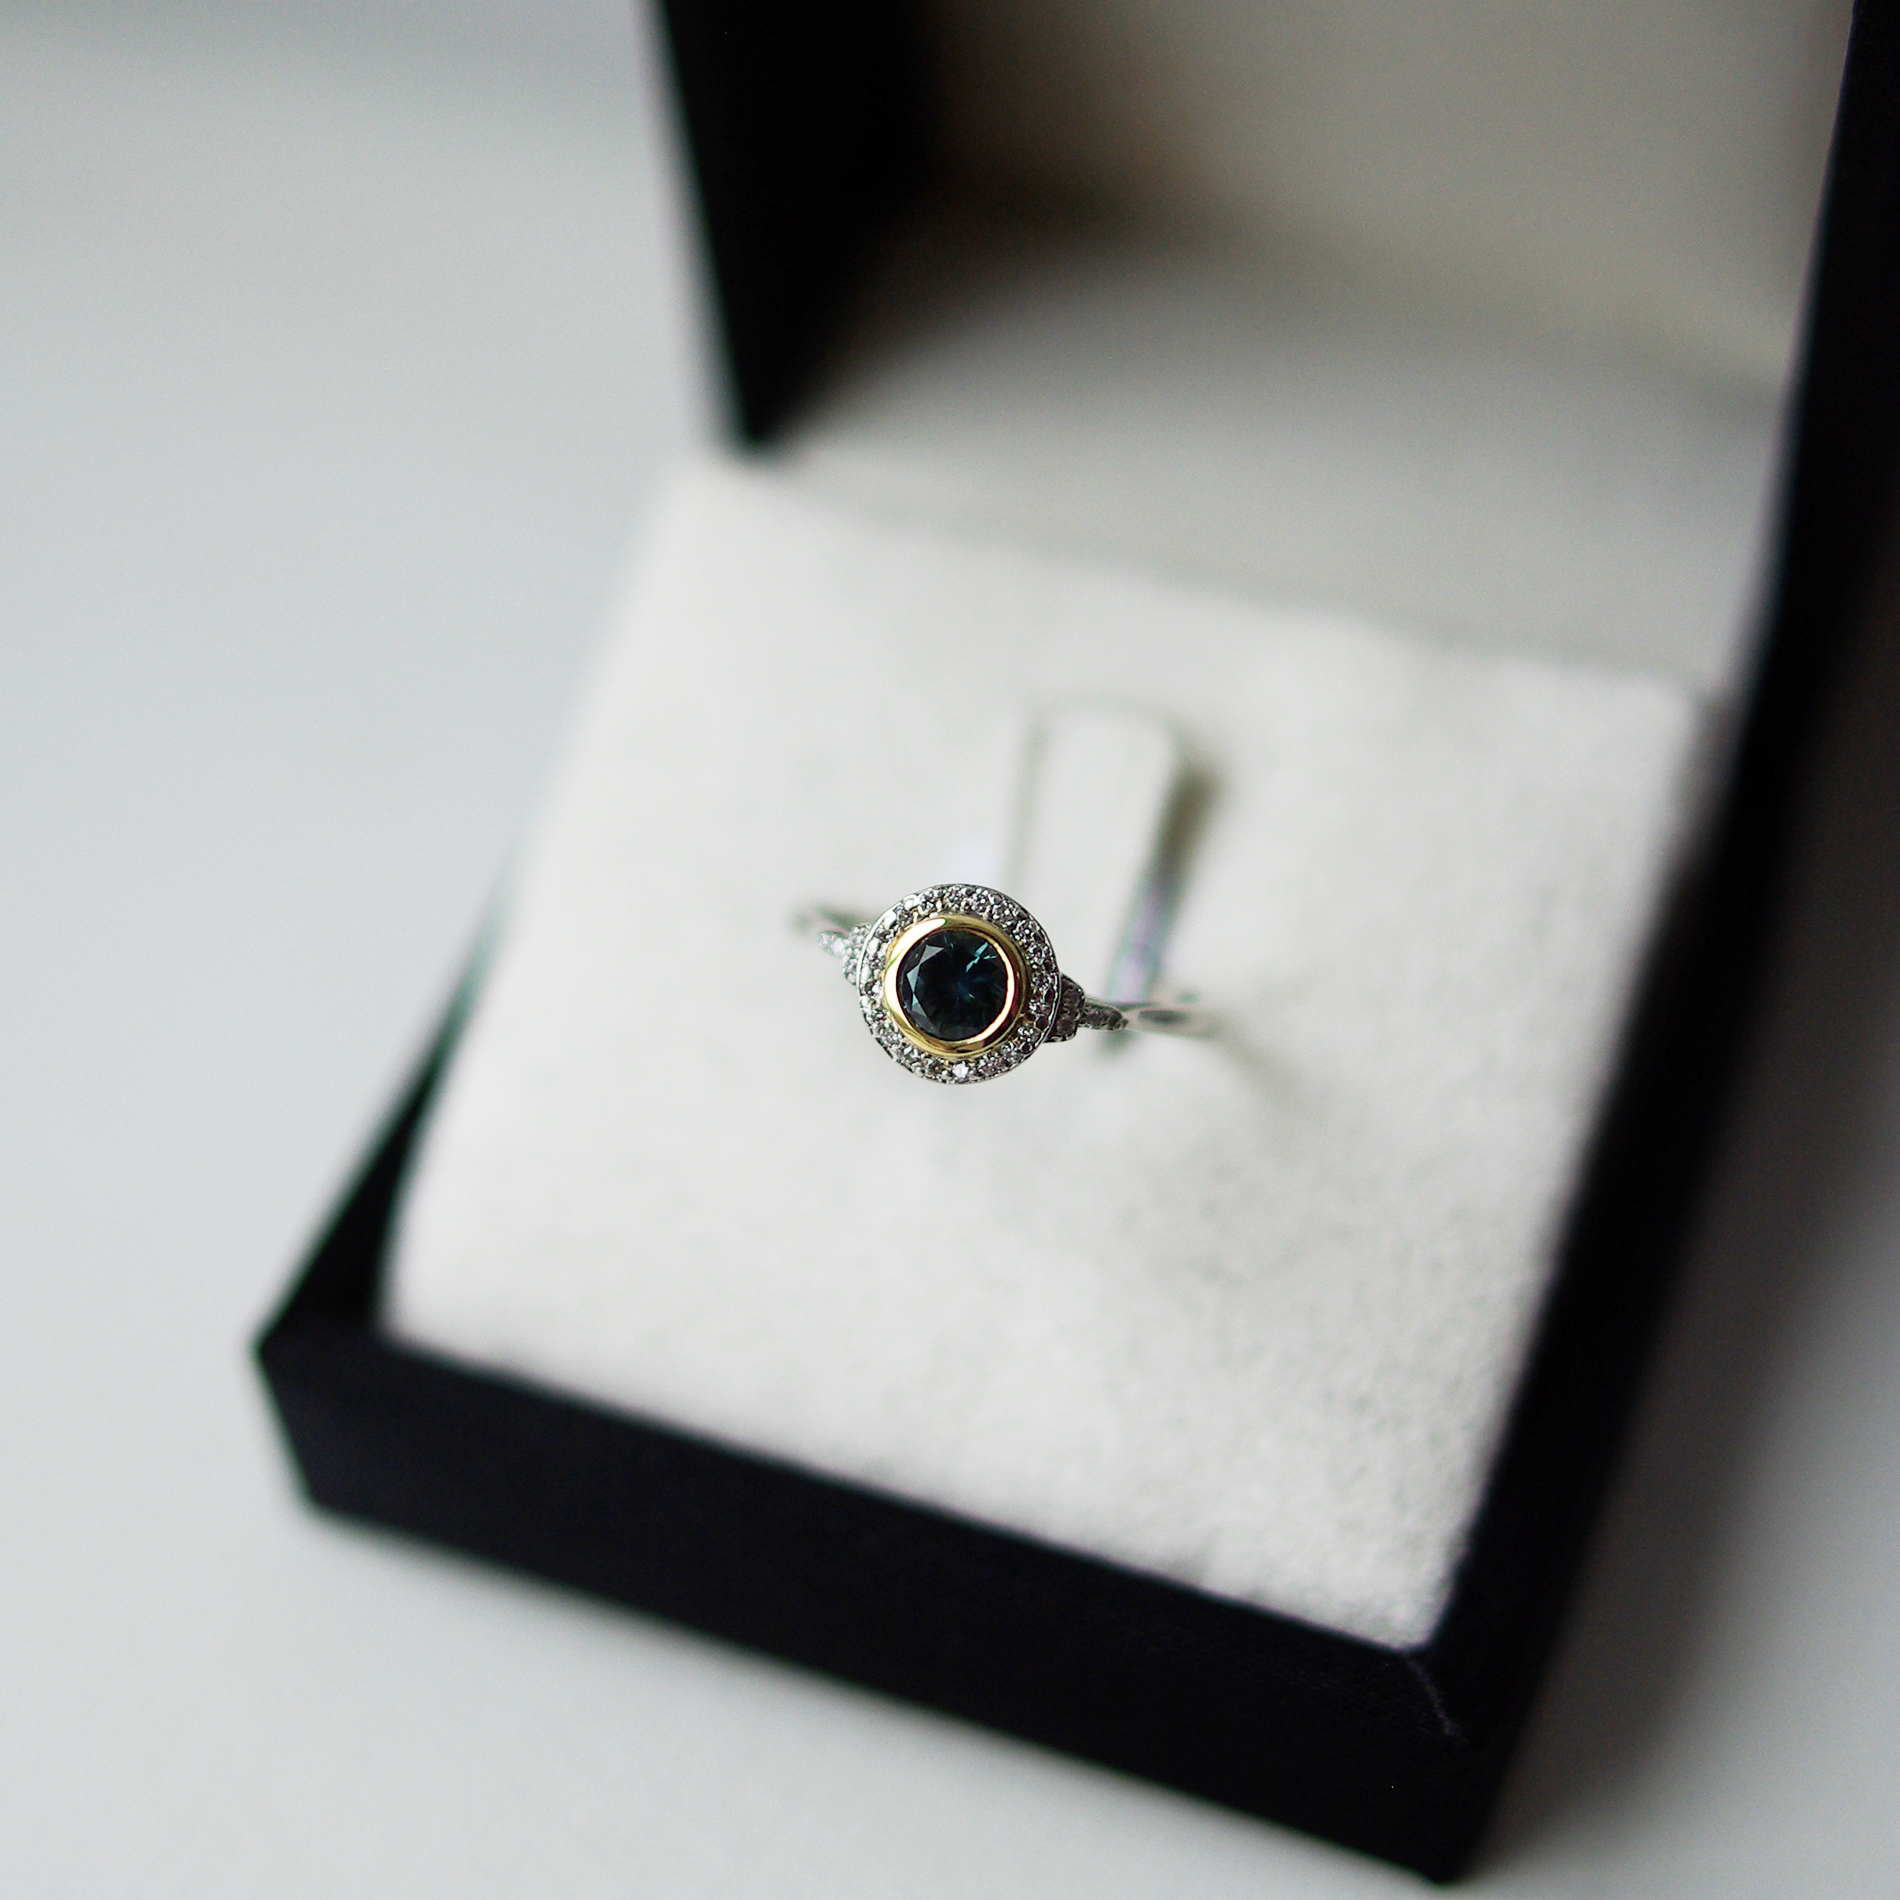 Round Brilliant Cut Teal Sapphire Diamond Halo And Shoulders Platinum Ring